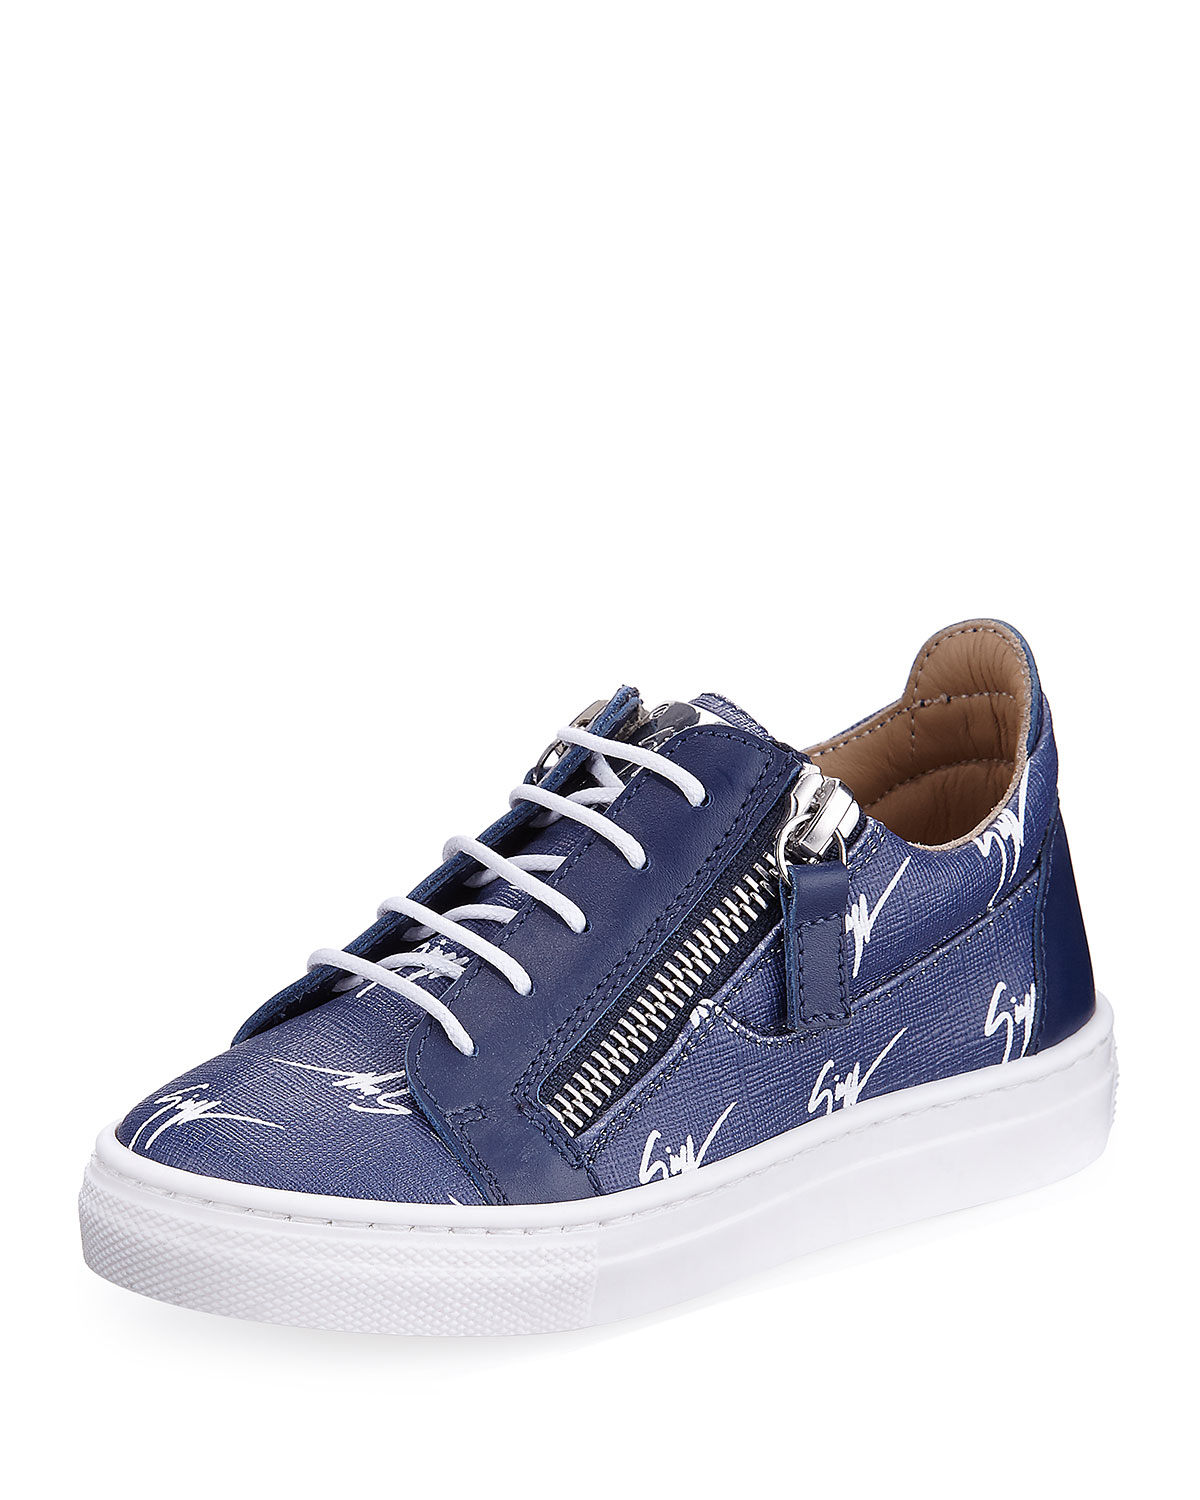 LogoPrint Leather LowTop Sneakers Toddler Sizes 6M9T